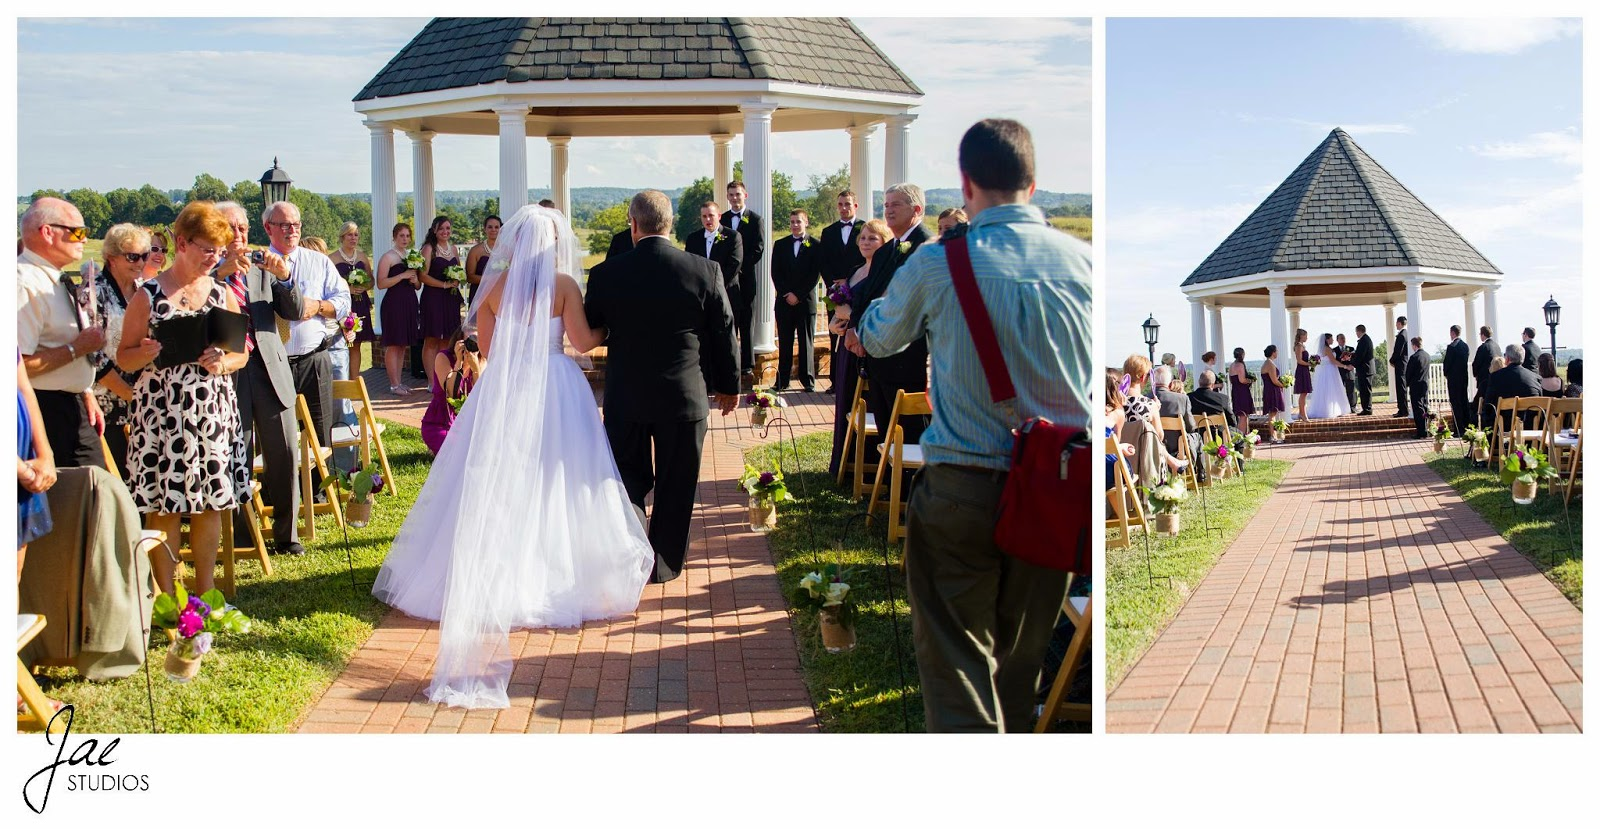 Jonathan and Julie, Bird cage, West Manor Estate, Wedding, Lynchburg, Virginia, Jae Studios, bride, walking down the aisle, father of the bride, guests, outdoors, ceremony